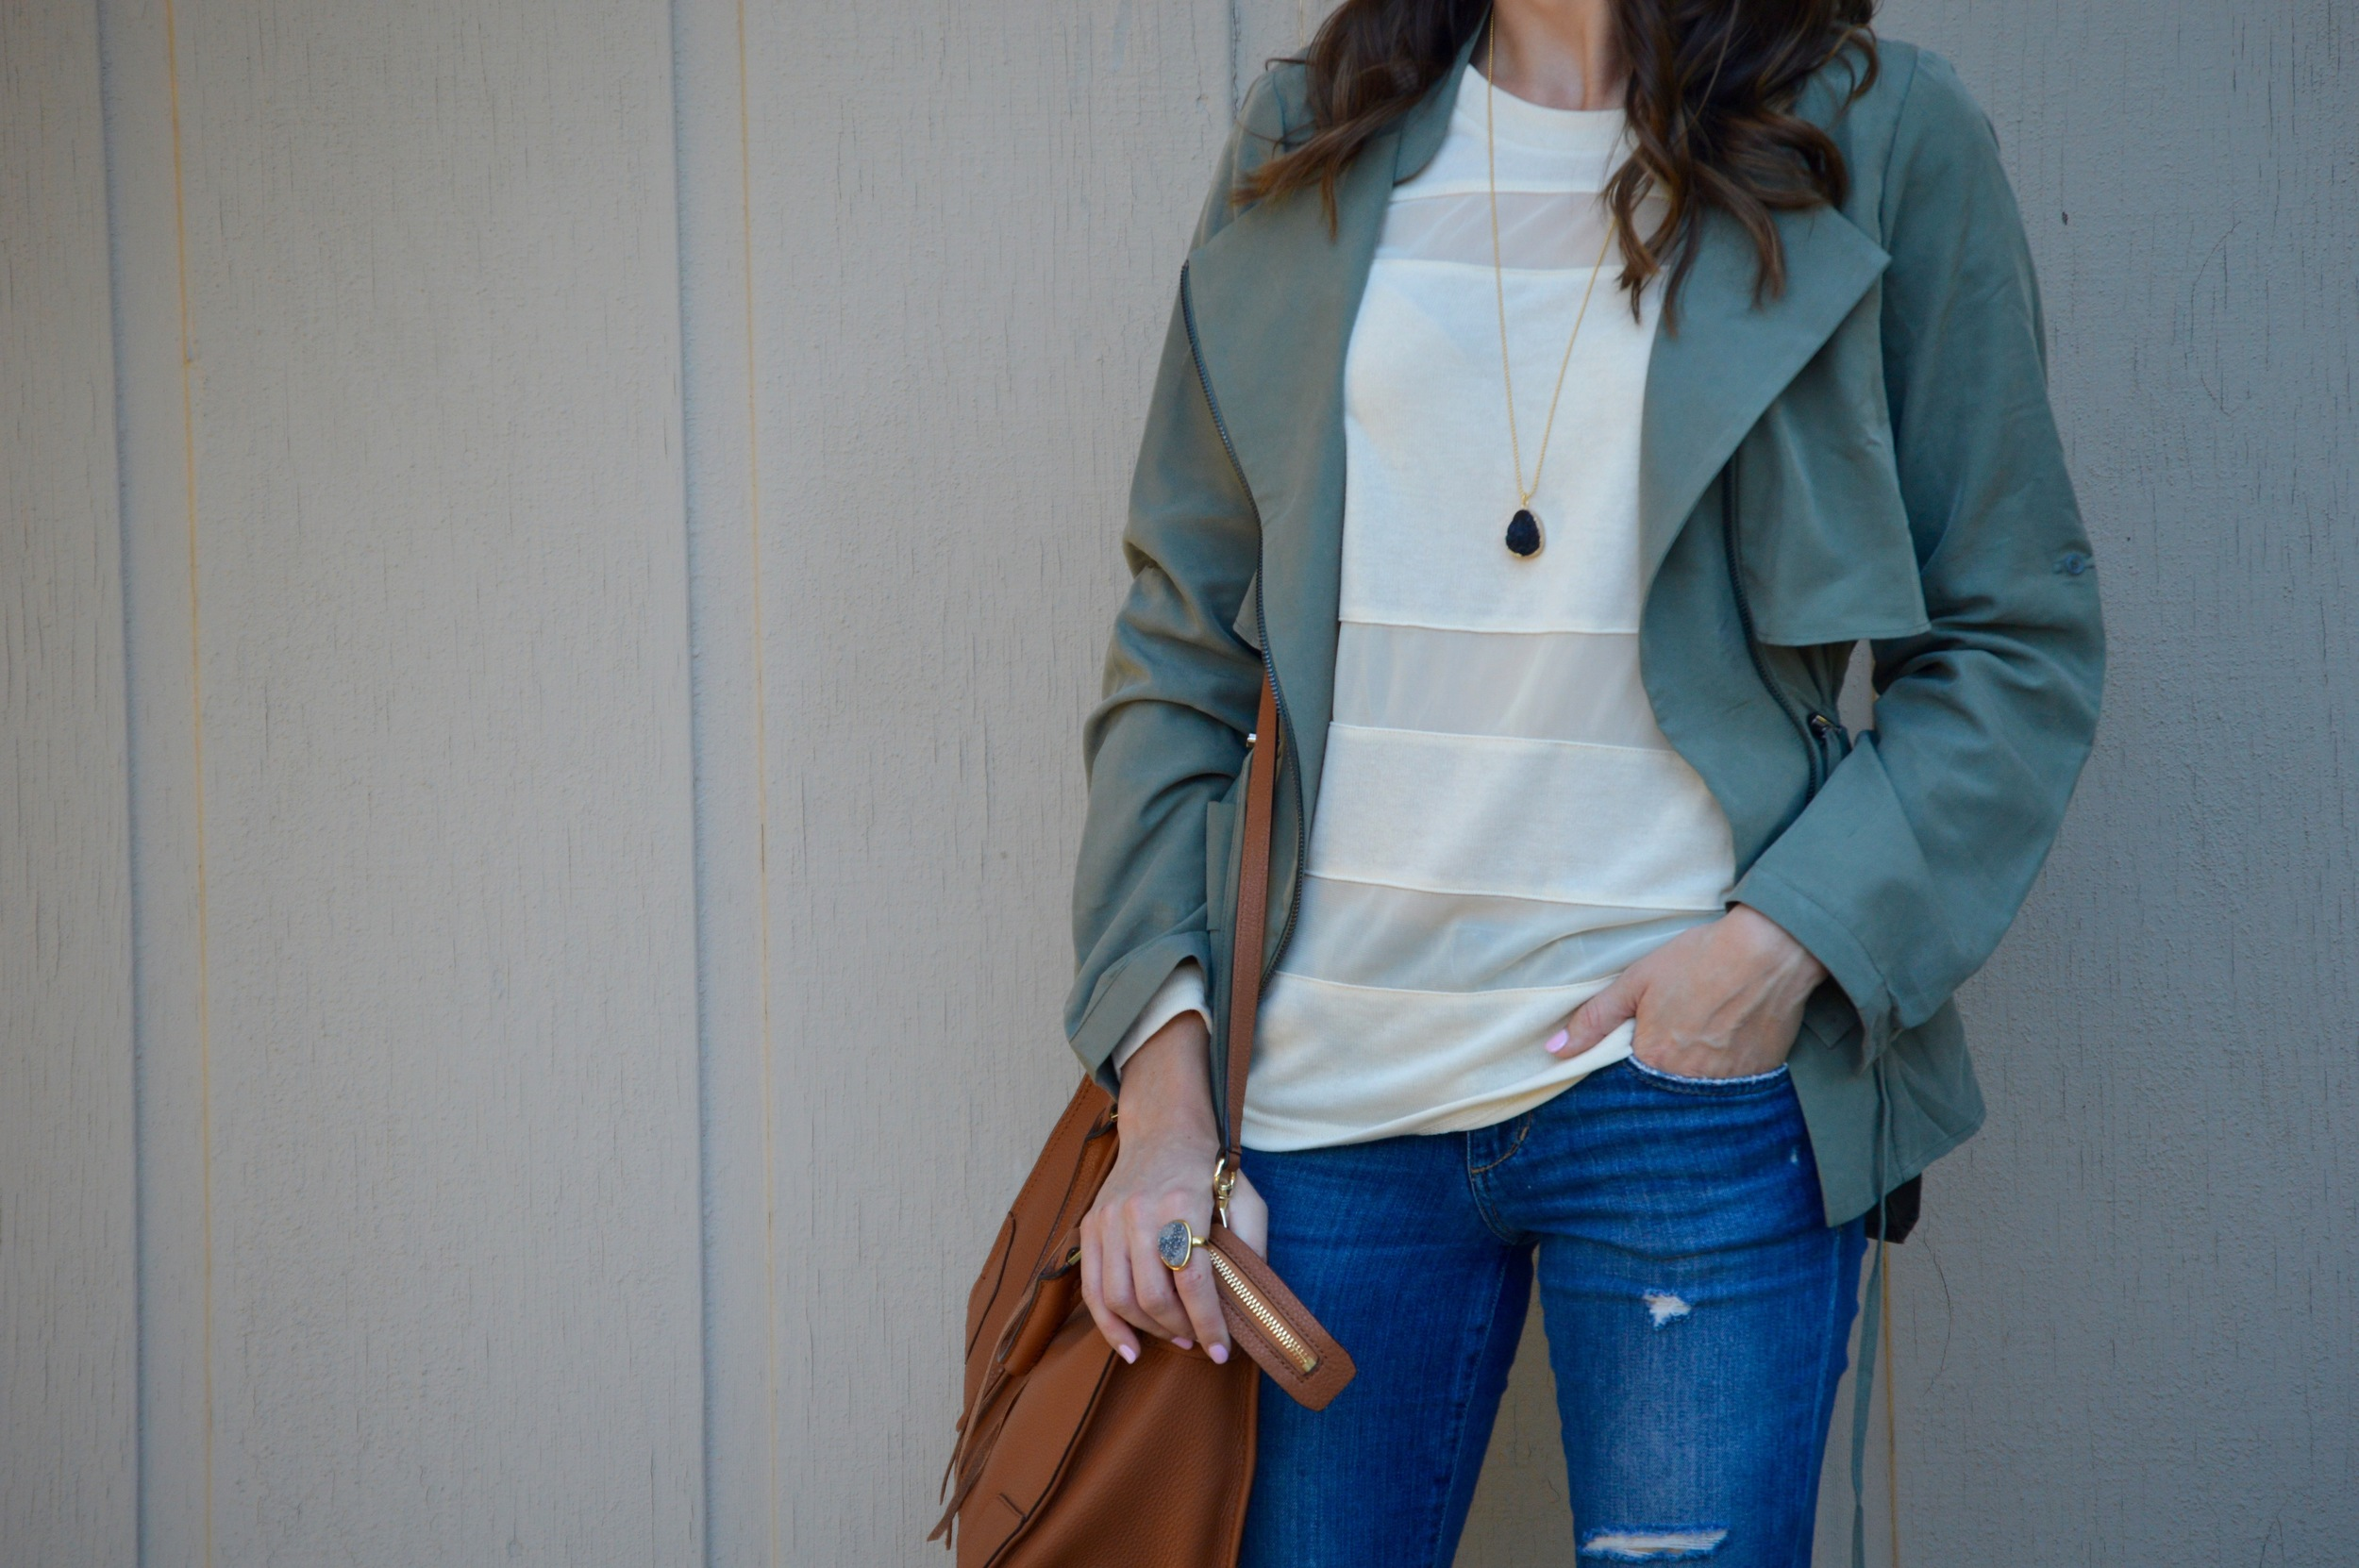 Shop the Look Below. Top: c/o  Pink Blush . Jacket: c/o  Pink Blush . Jeans:  Joe's.  Bag:  Rebecca Minkoff . Necklace: c/o  BaubleBar . Ring: c/o  BaubleBar.  Boots:  Cole Haan . Sunglasses:  Ray-Ban.